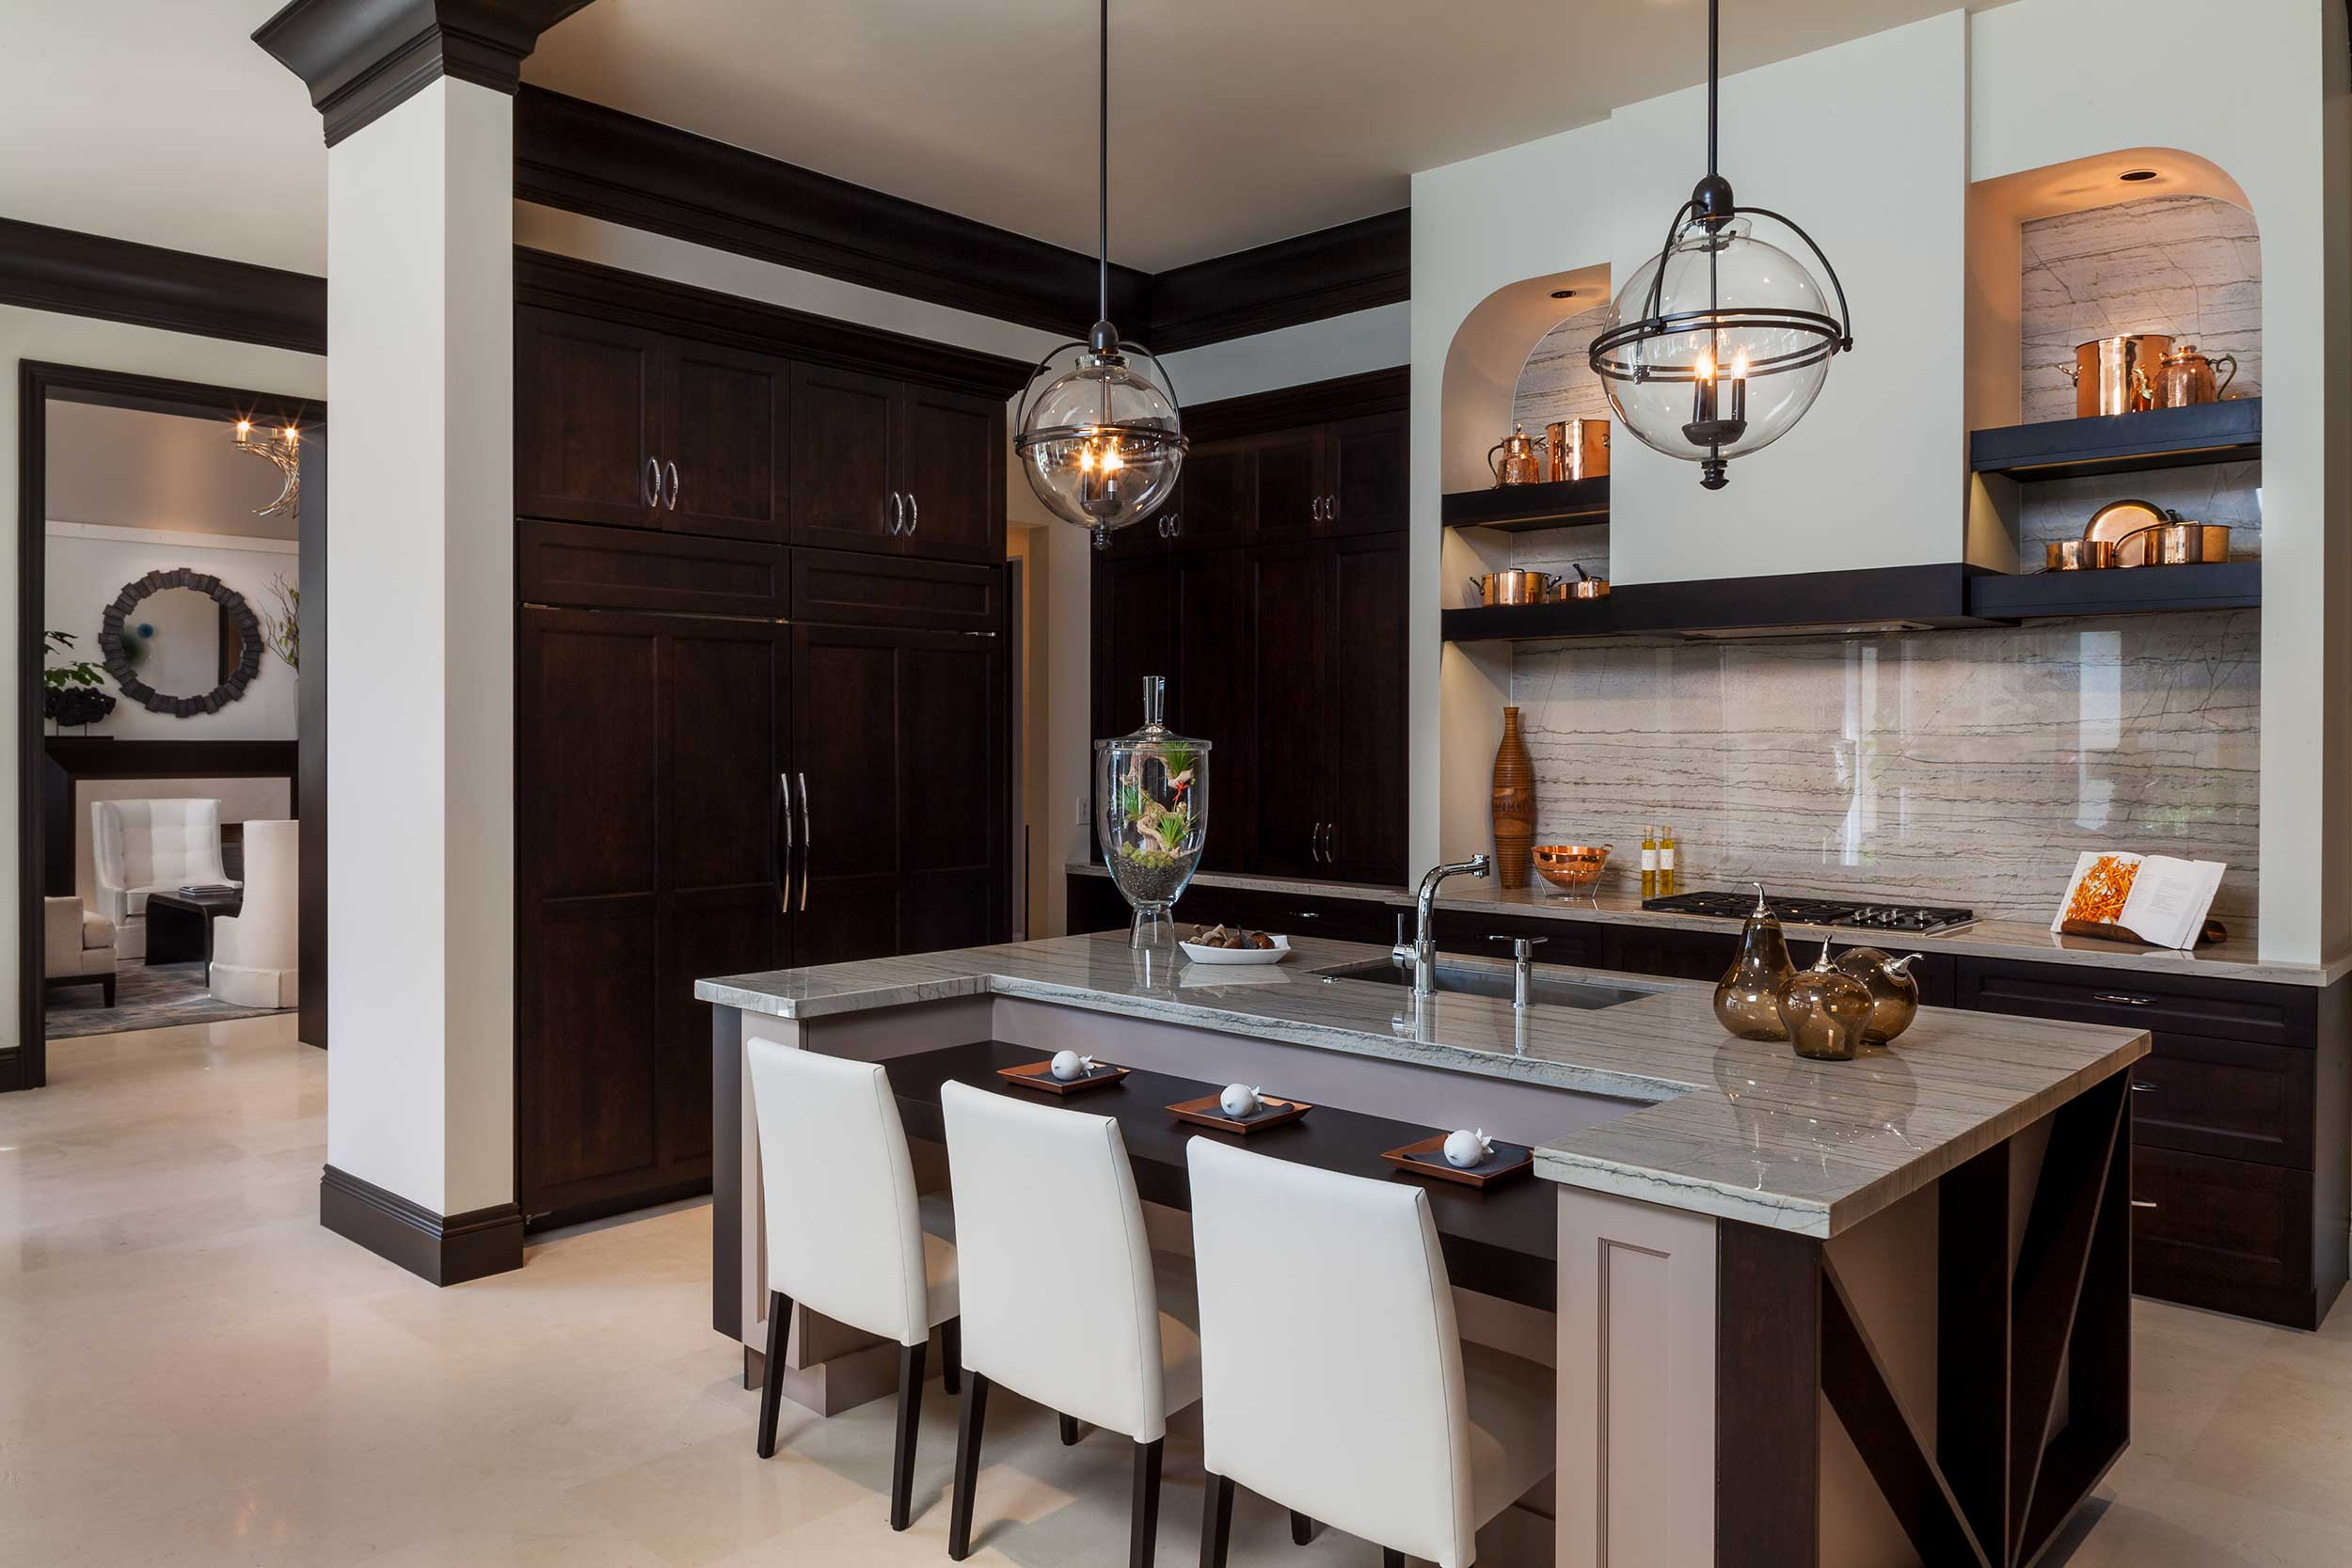 High end kitchen design at Old Palm Golf Club